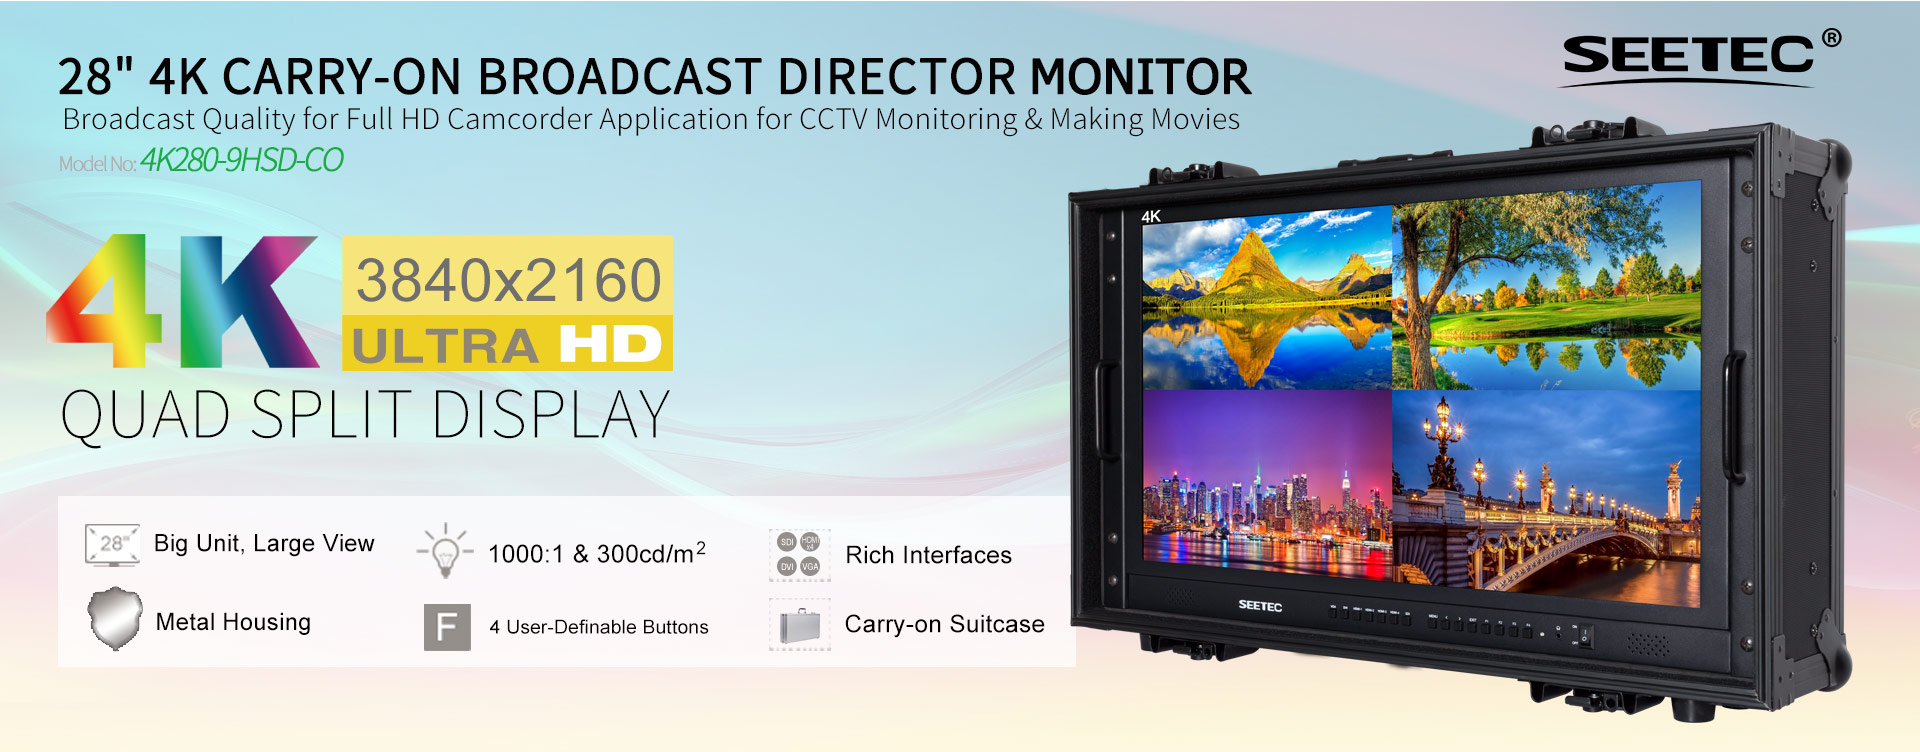 4K280-9HSD-CO-28-inch-4K-carry-on-director-monitor